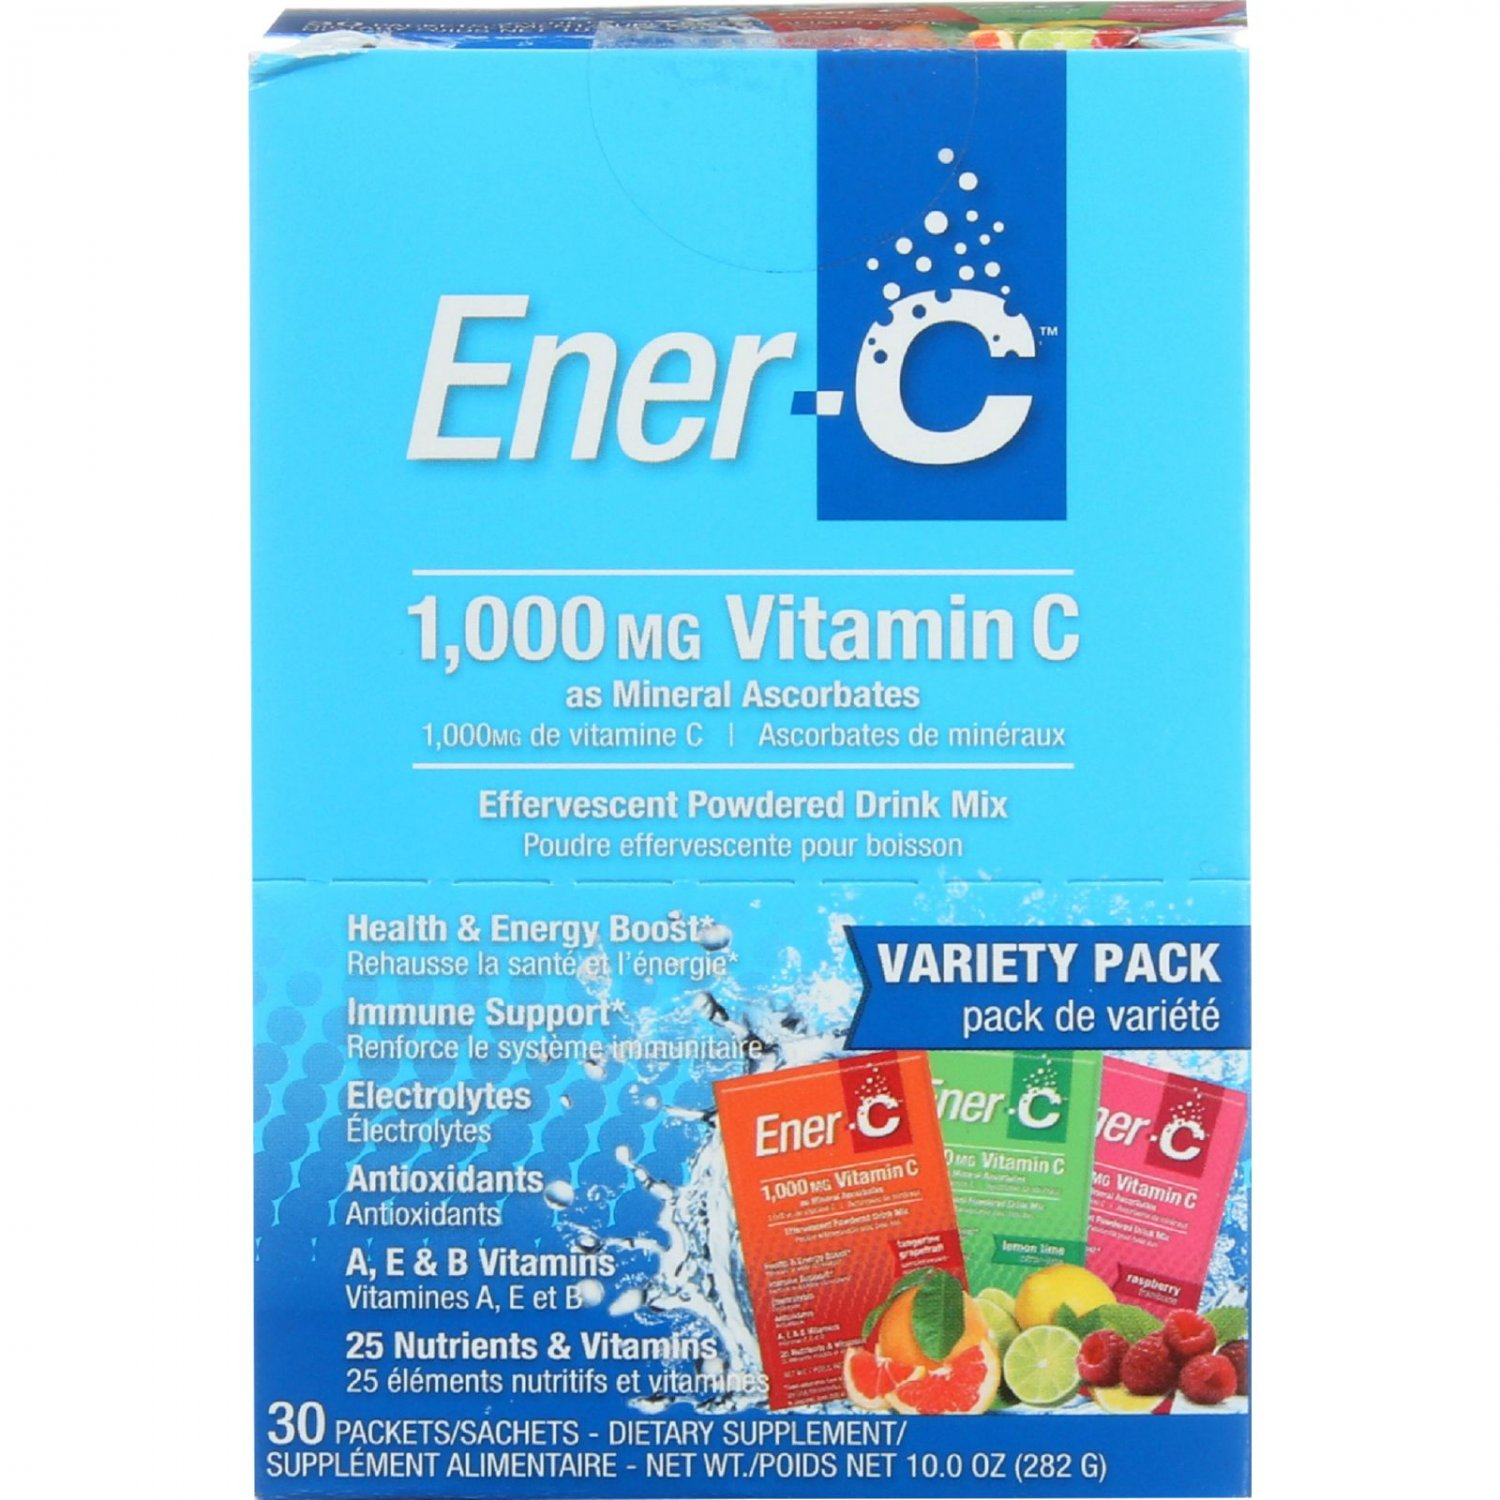 Ener-C - Variety Pack - 1000 mg - 30 packets - 1 each